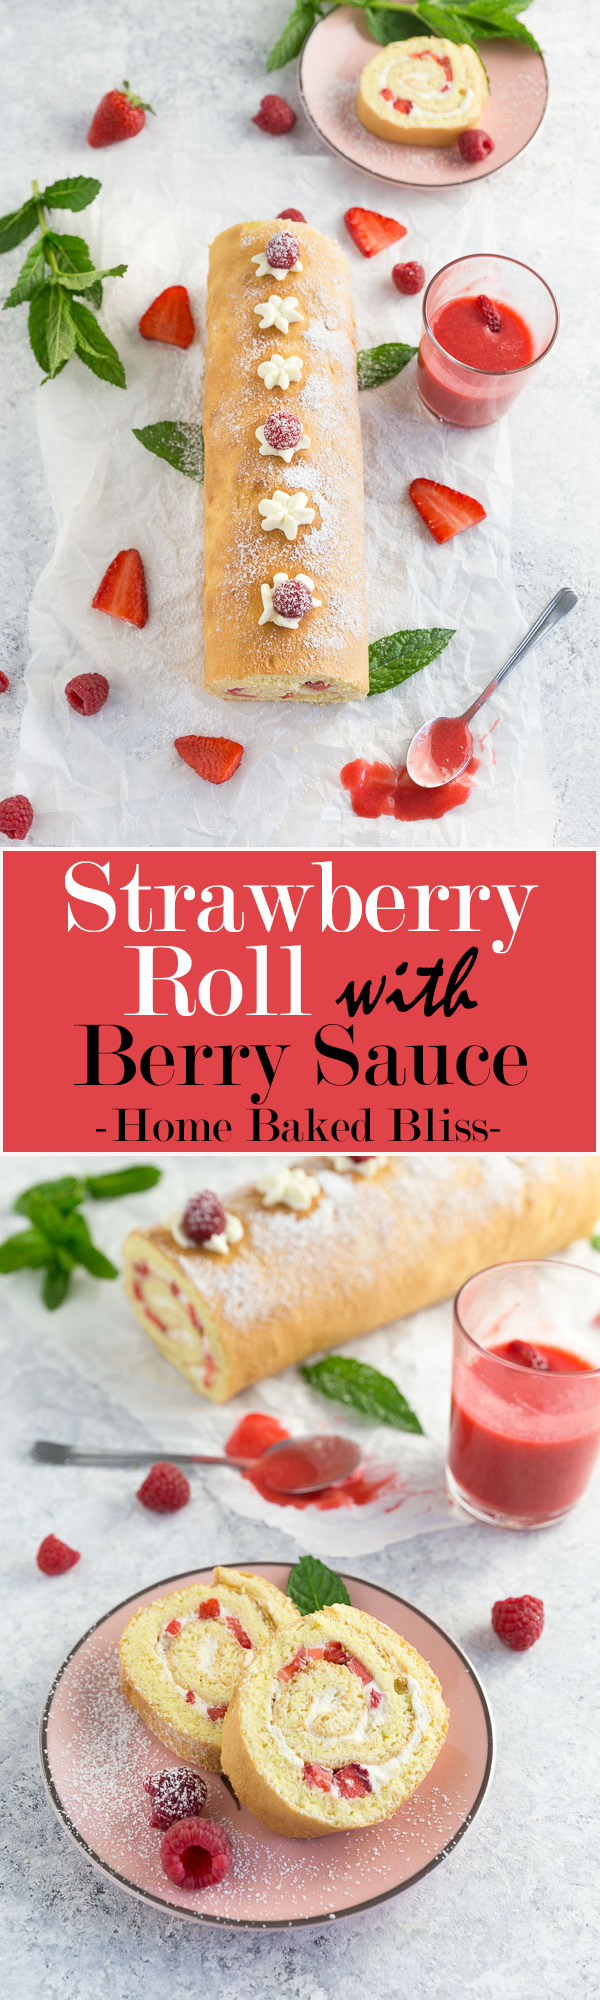 A light and fluffy strawberry roll with fresh berry sauce. The perfect summer dessert!